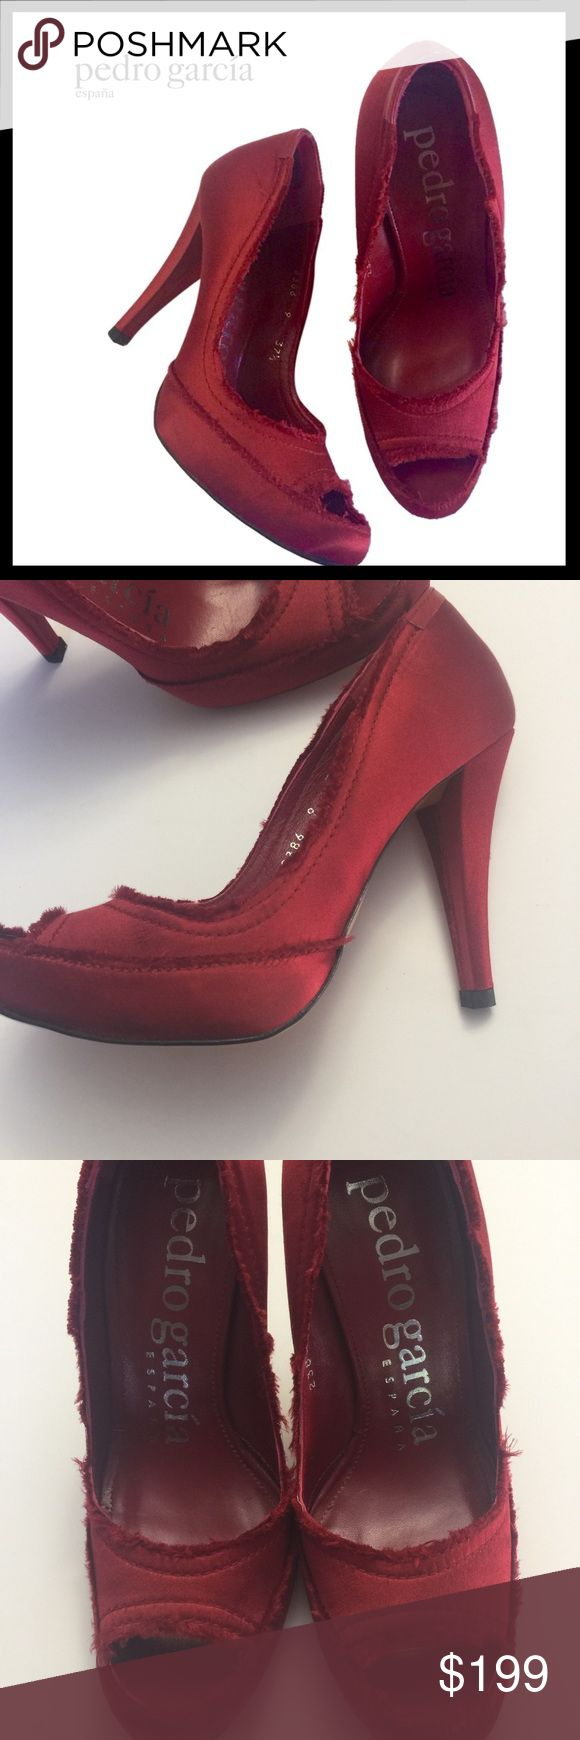 PEDRO GARCIA Red Satin Peep Toe w/frayed edges PEDRO GARCIA Red Satin Peep Toe with signature frayed edges. NEVER WORN. One shoe has small mark possibly from when sticker was removed. Leather soles.No box. Pedro Garcia Shoes Heels